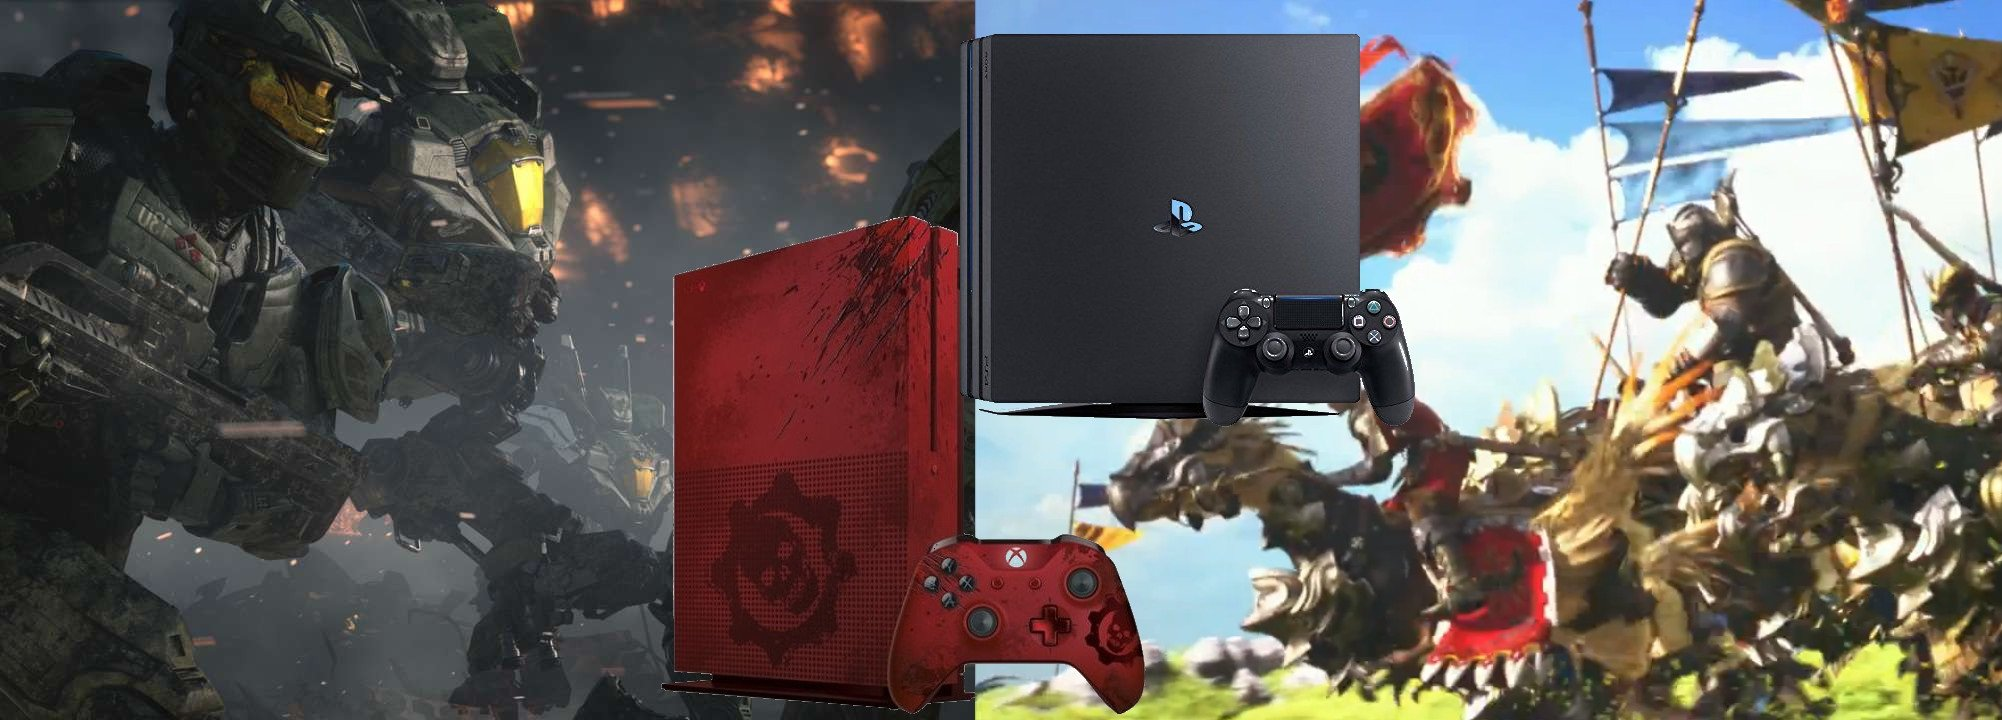 Weekend deals: PS4 Pro and 2TB Xbox One S go cheap